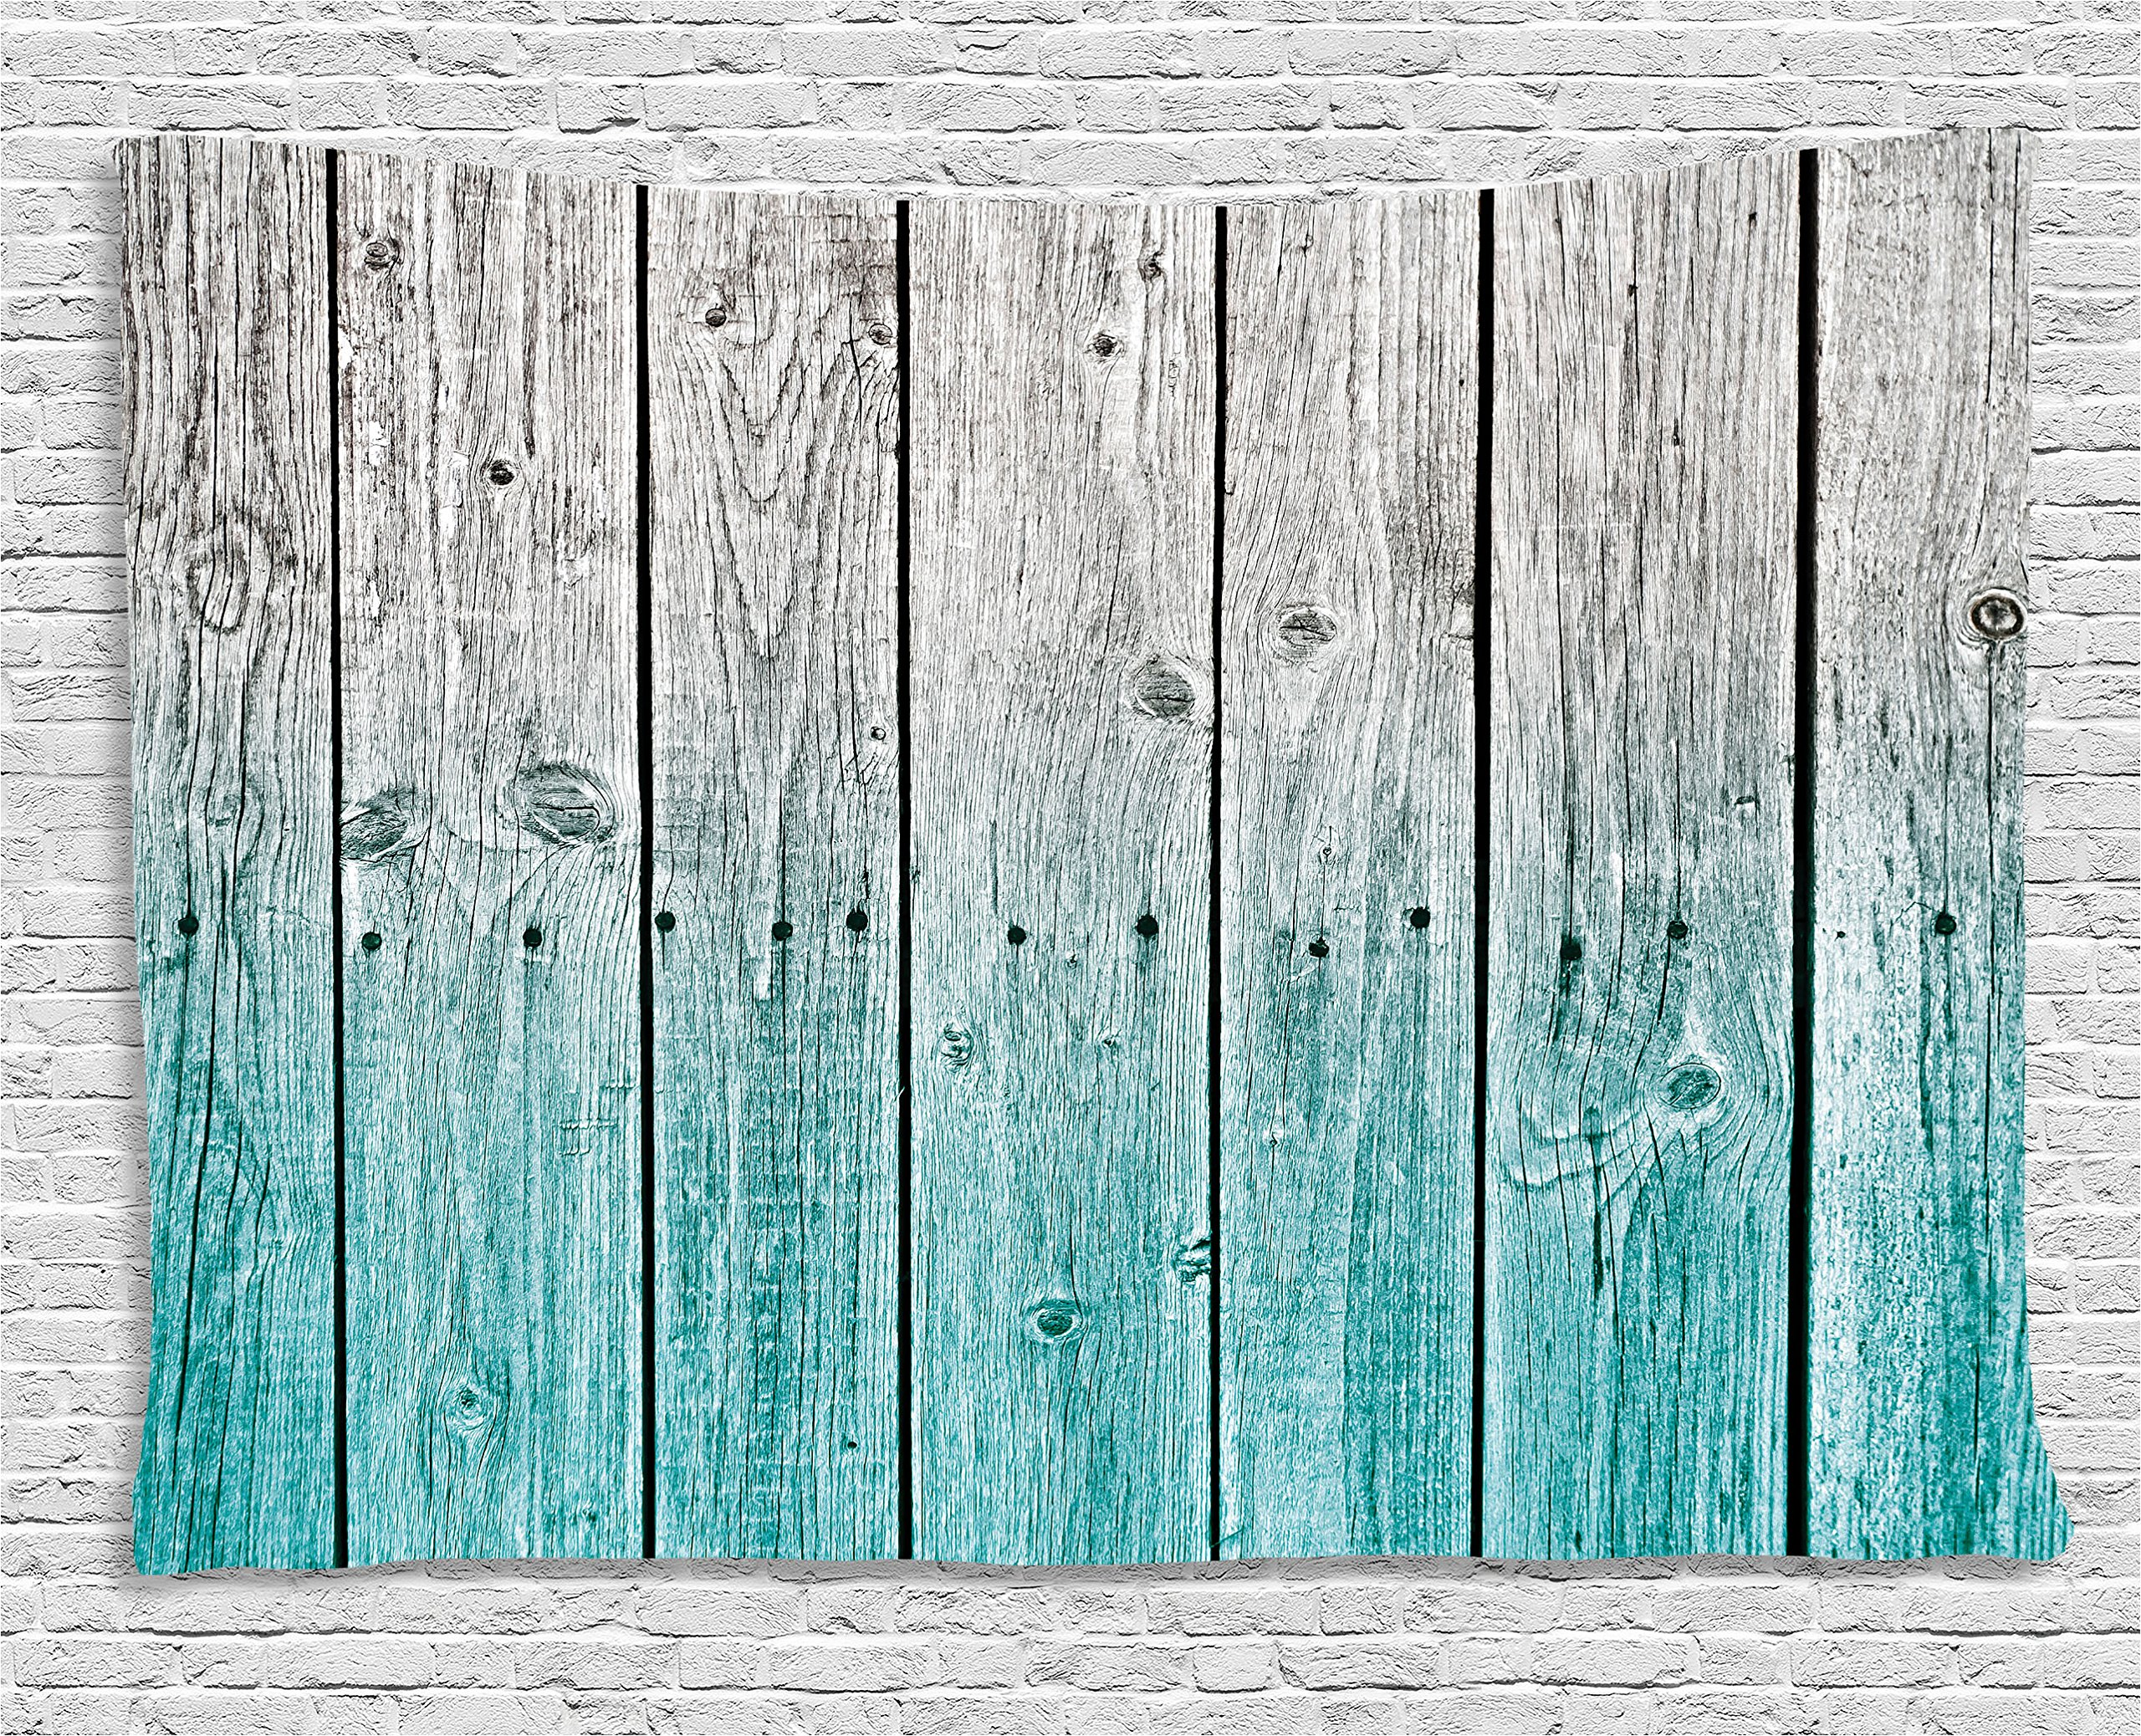 Ambesonne Rustic Tapestry Decor, Wood Panels Background with Digital Tones Effect Country House Image, Wall Hanging for Bedroom Living Room Dorm, 80 W X 60 L inches, Teal Grey